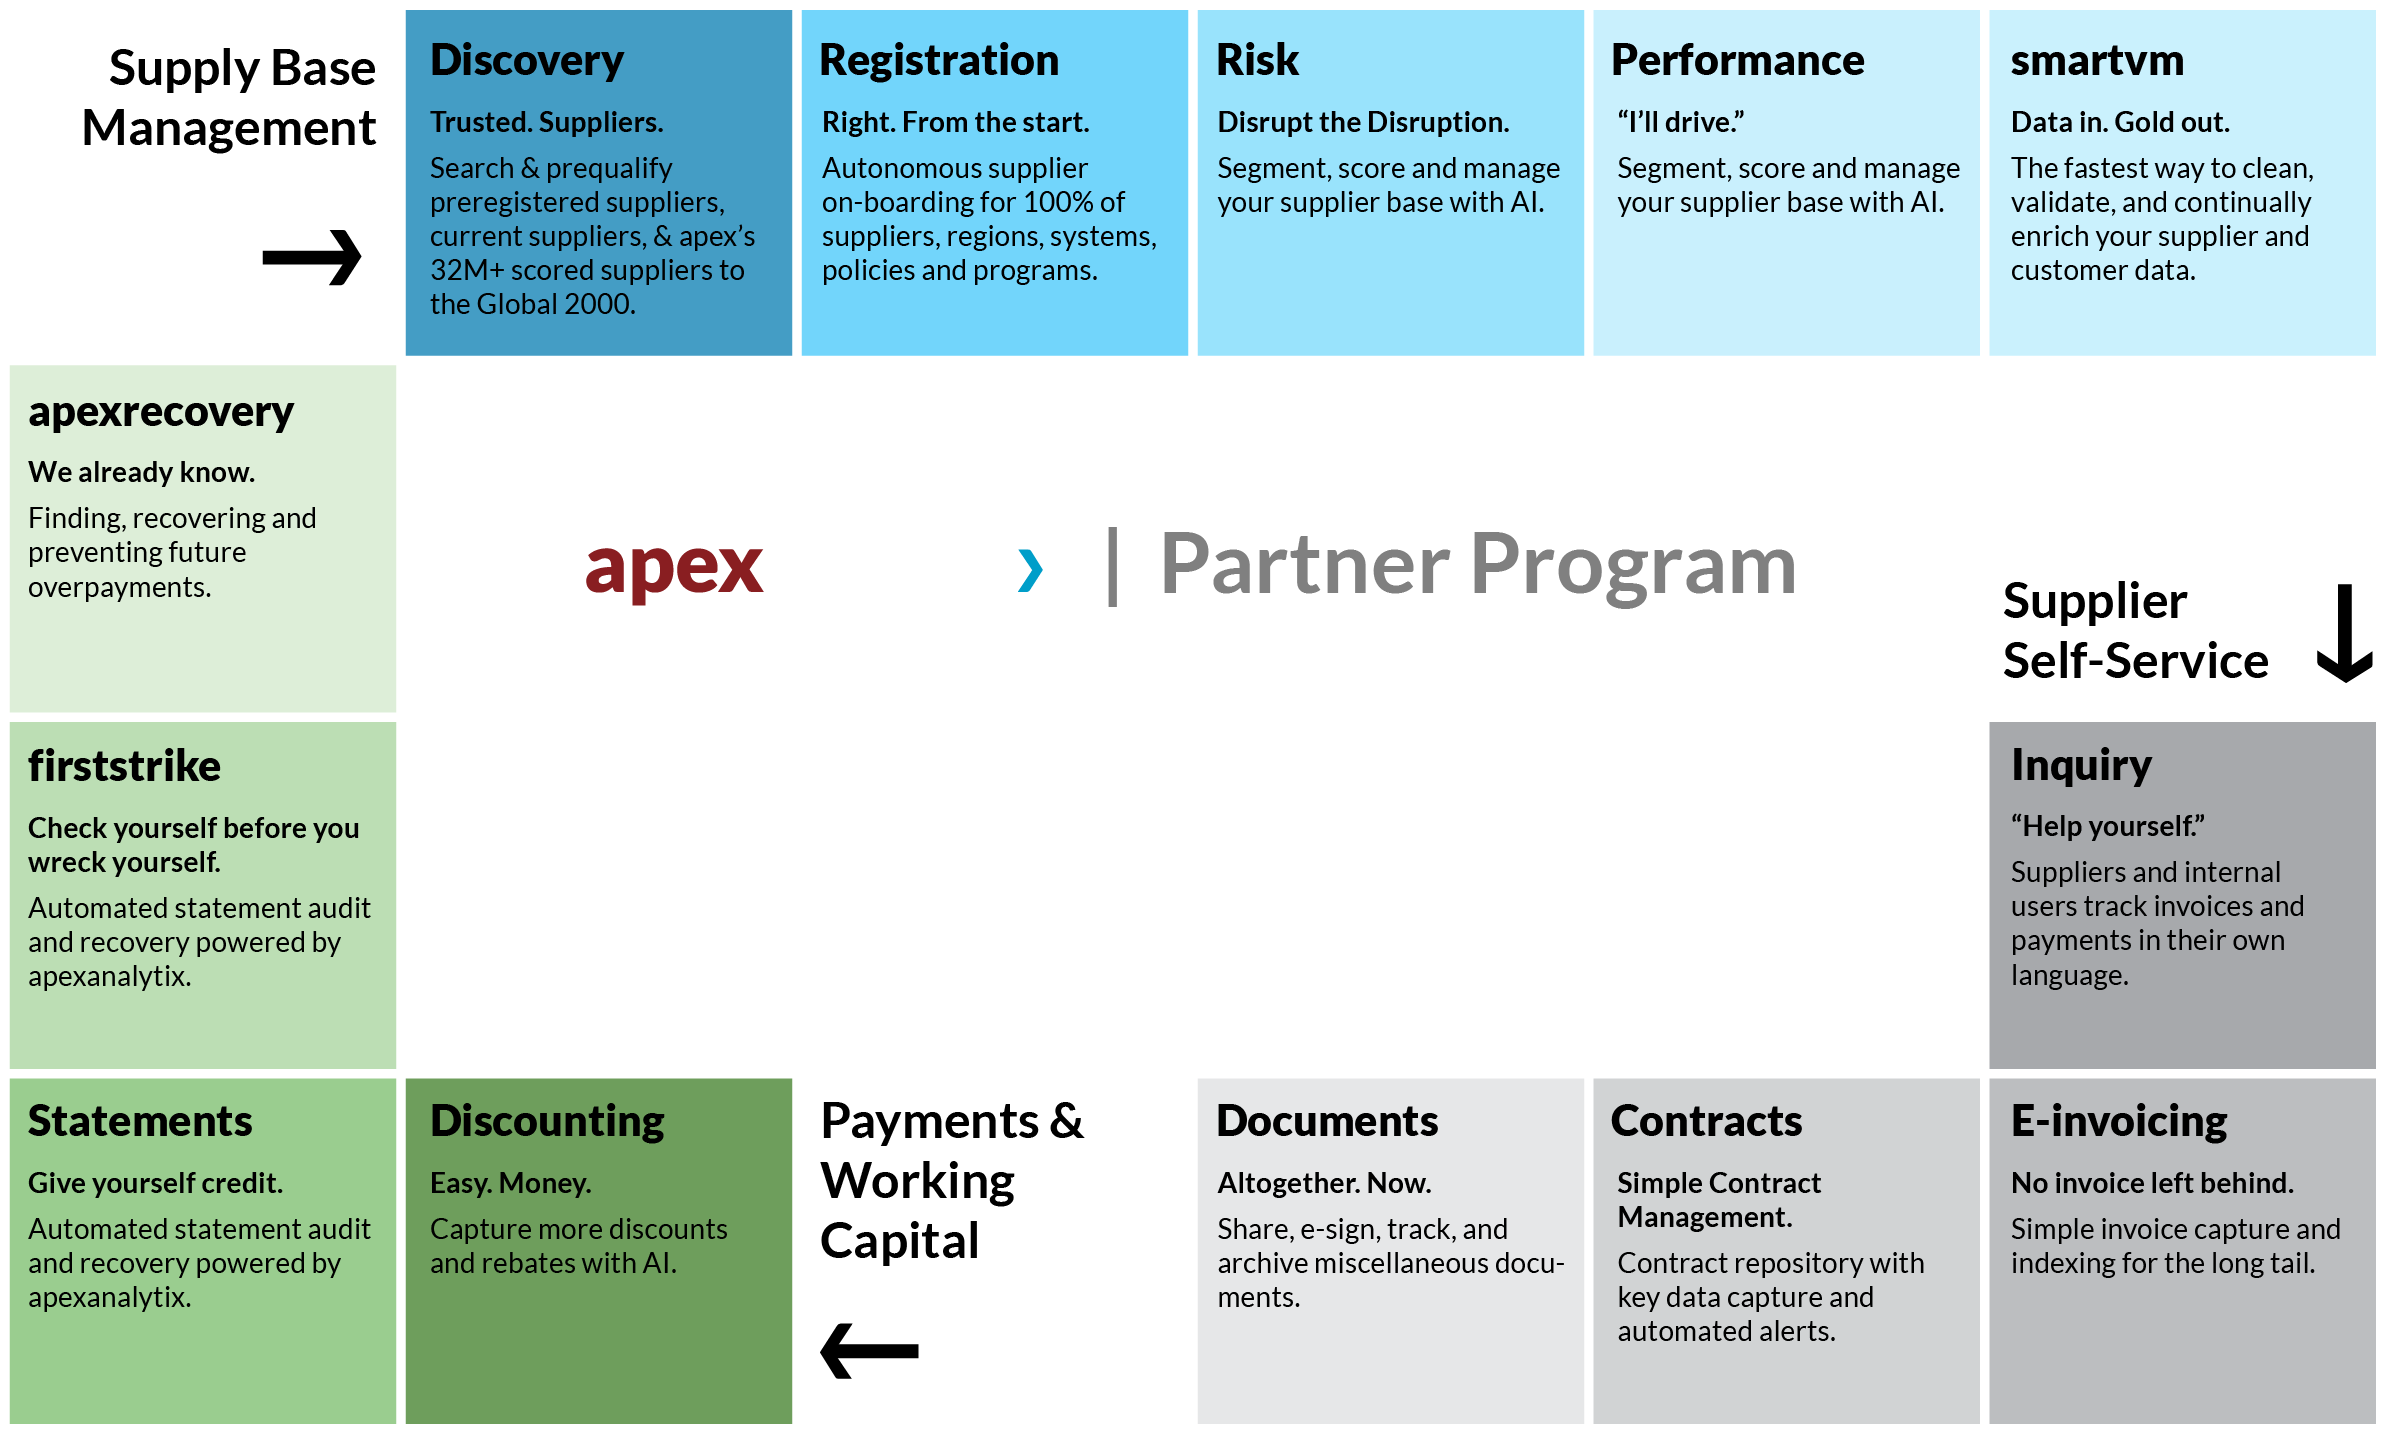 https://www.apexanalytix.com/sites/default/files/apex-partner-program_steps-graphic-2.png